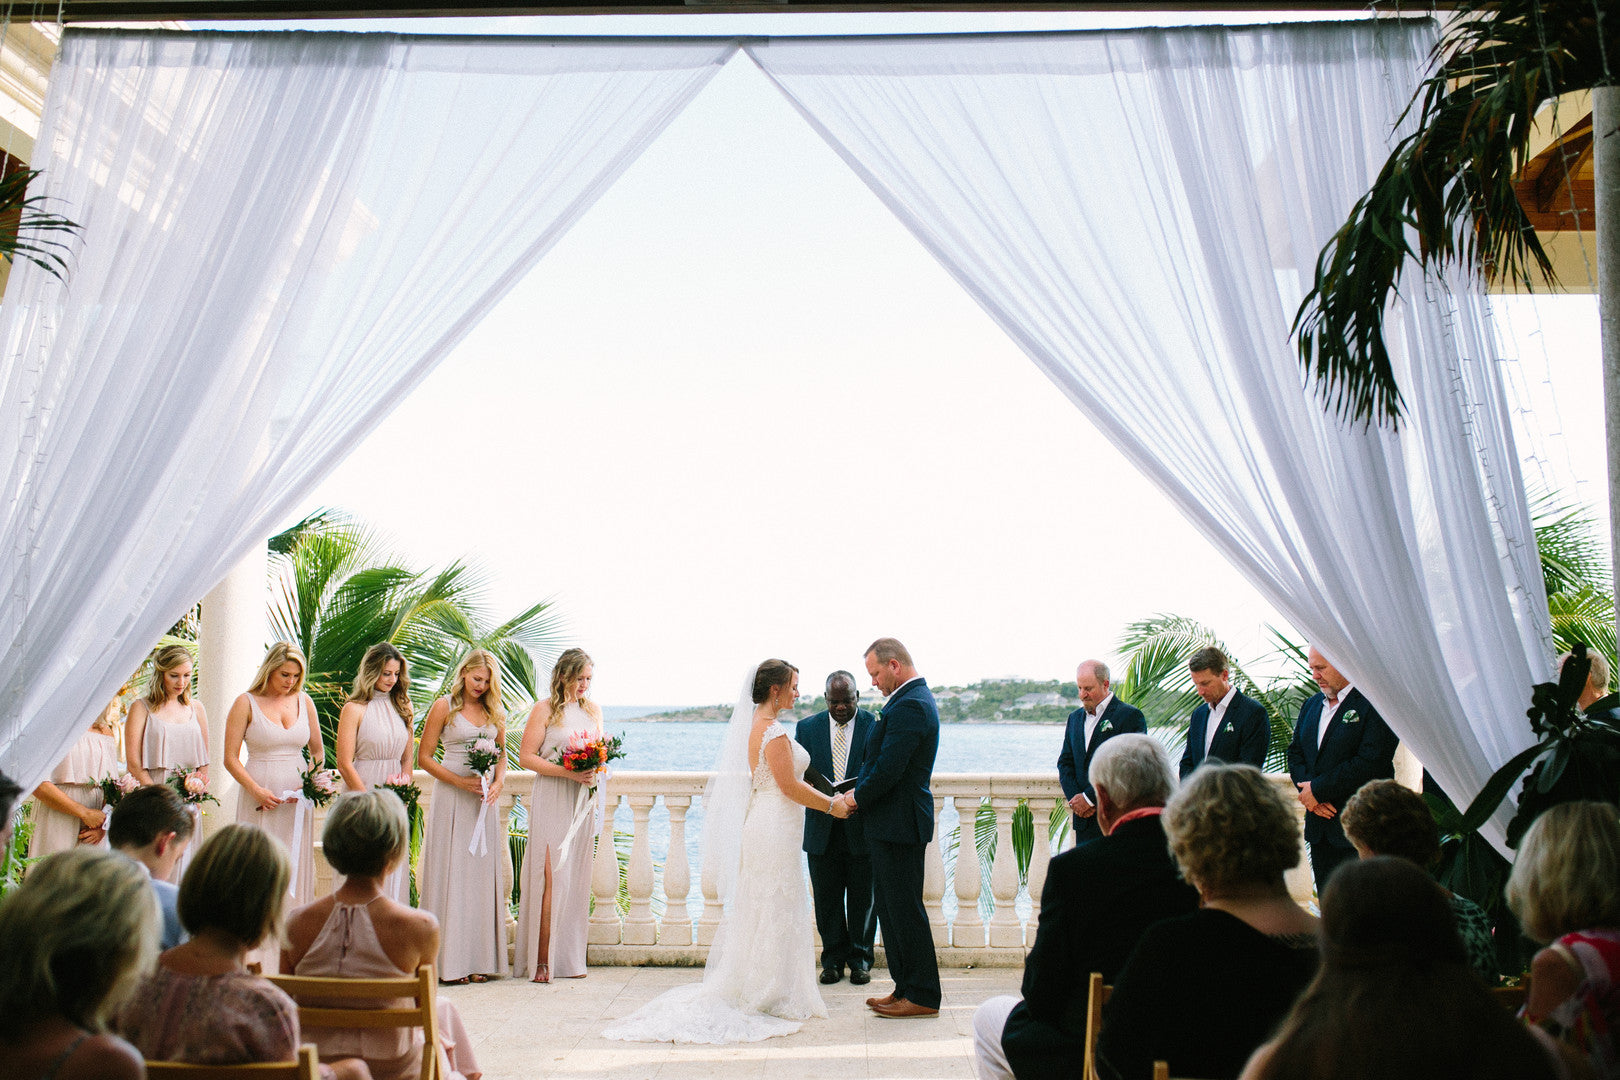 Bride and Groom at Alter | A Dreamy Destination Wedding at St. Thomas | Kate Aspen